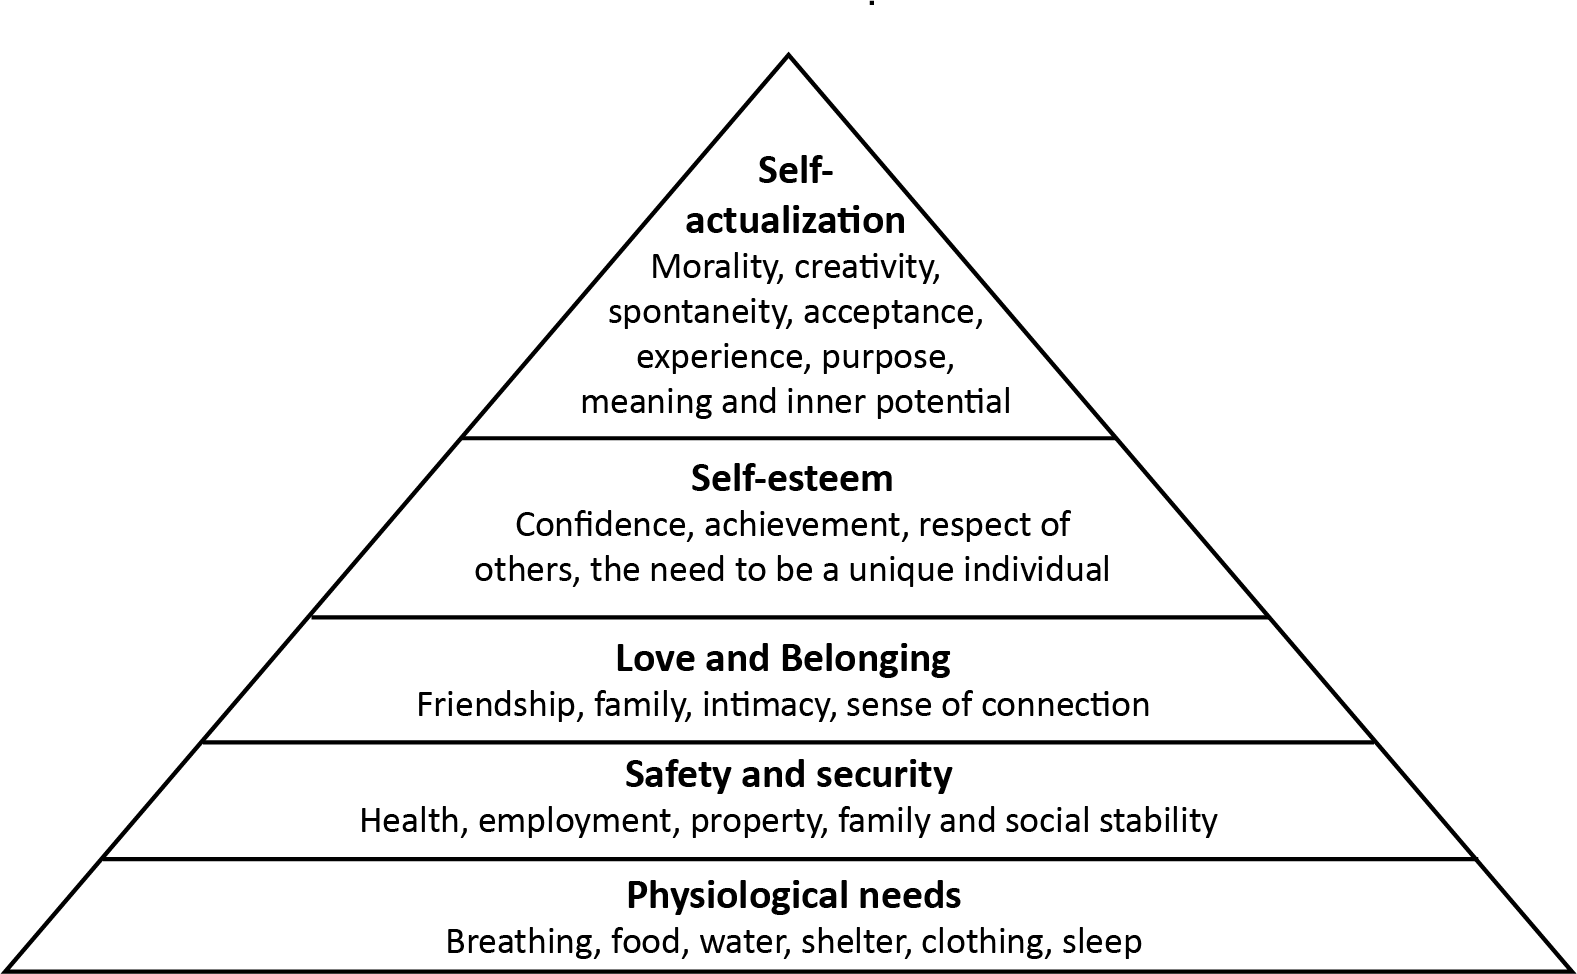 Diagram of Maslow's Hierarchy of Needs which is a pyramid with the following terms starting from the base - Physiological needs, safety and security, love and belonging, self-esteem, self-actualization.